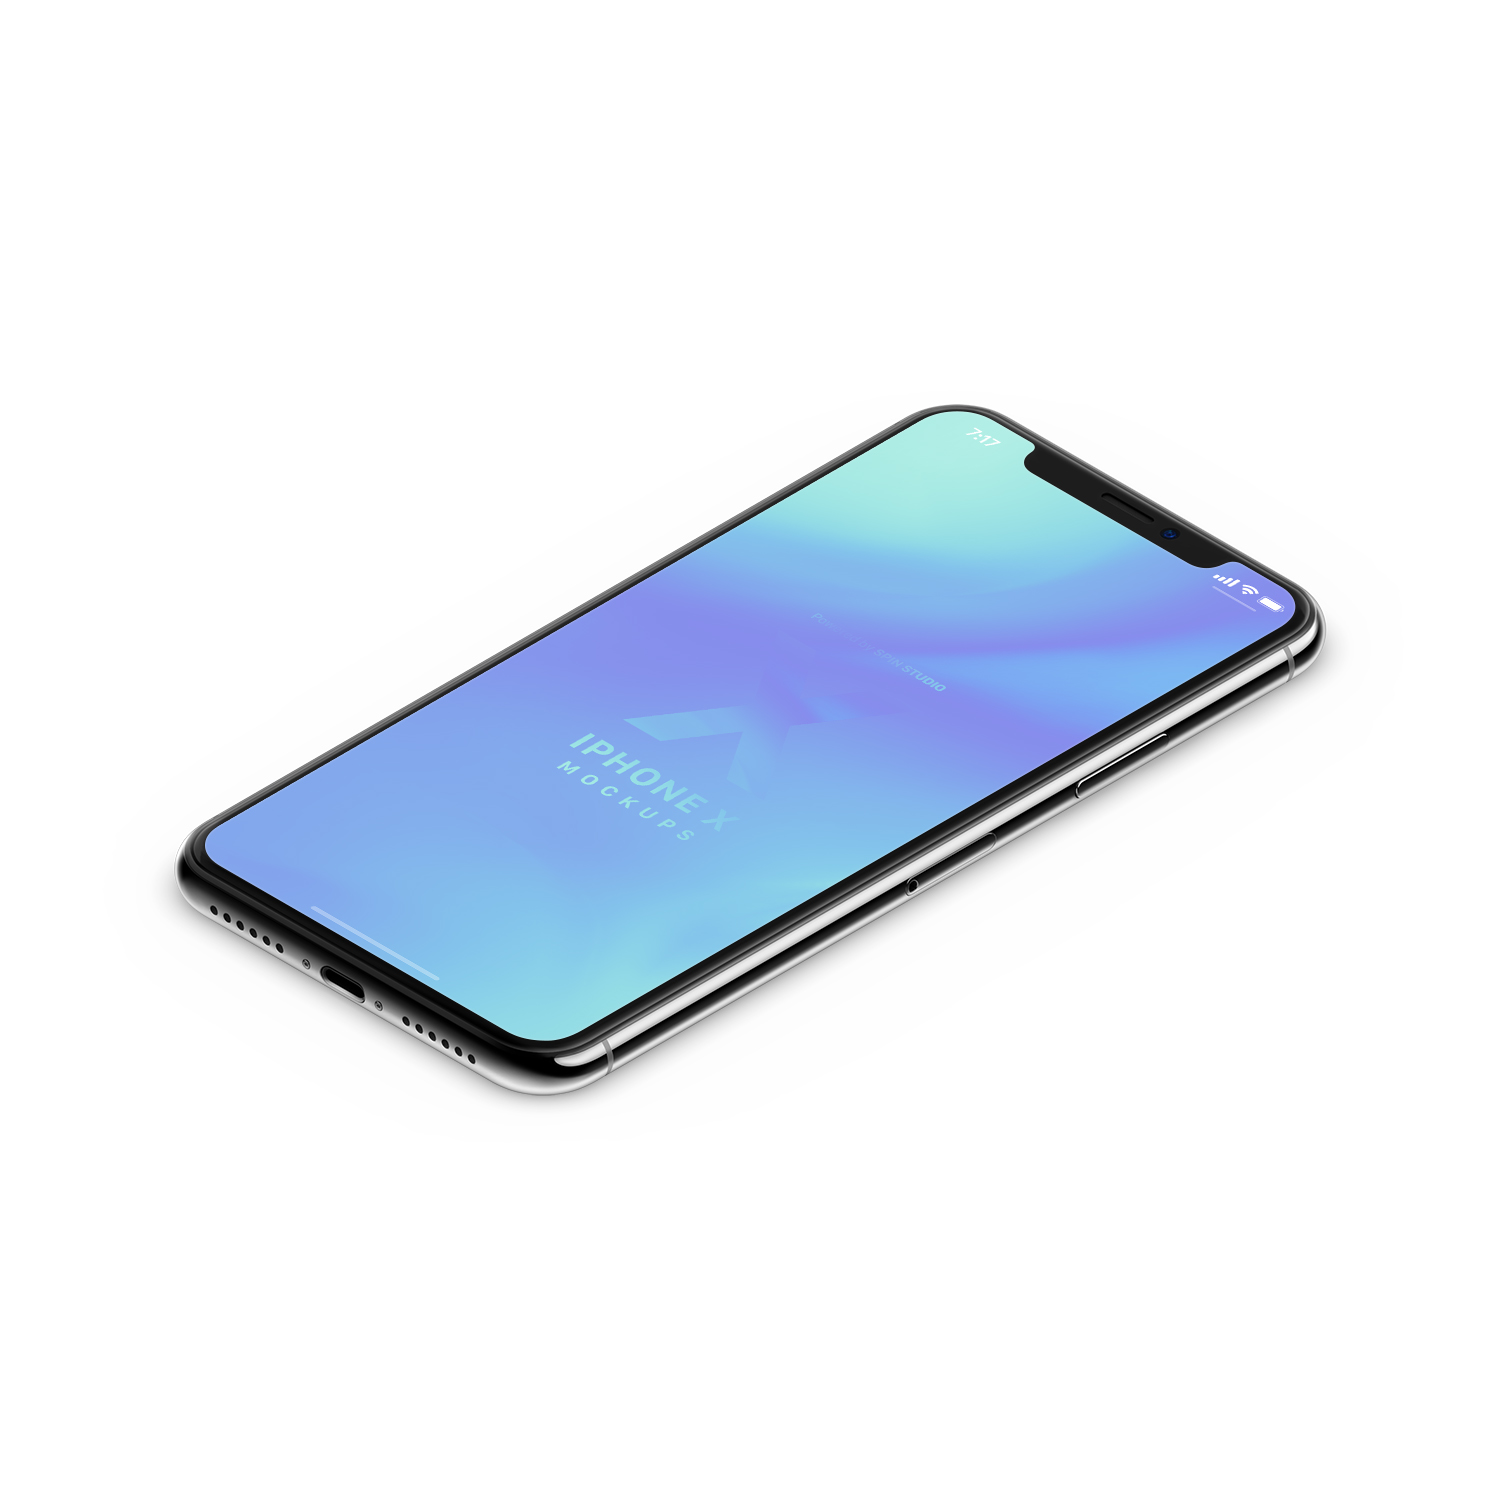 Clay Realistic iPhone X Mockup